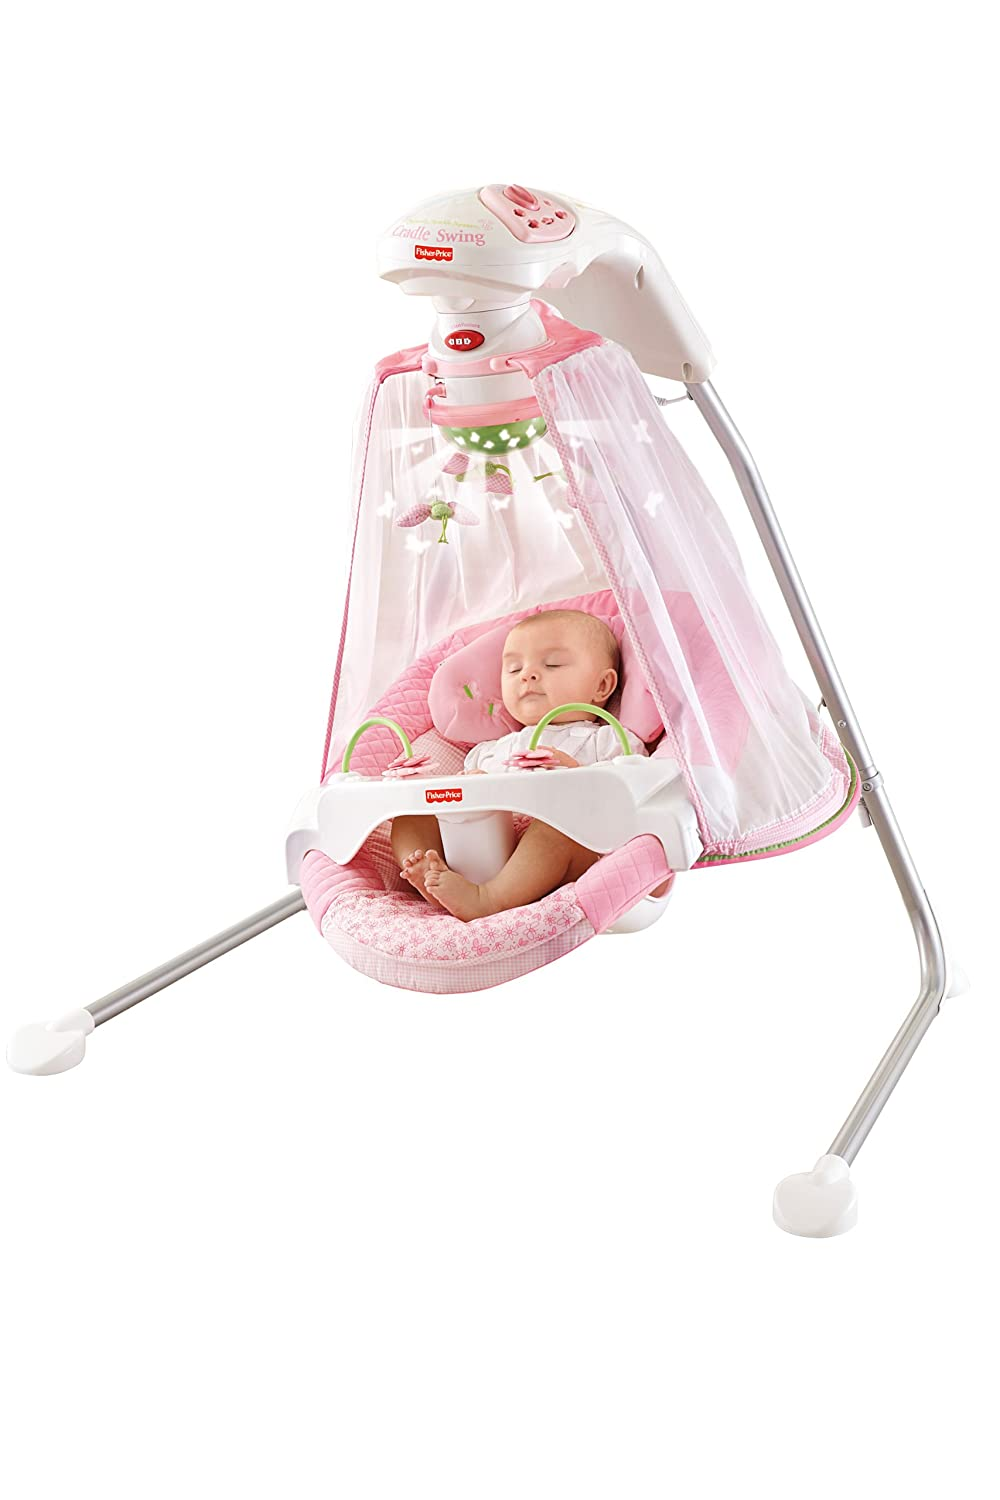 Amazon.com  Fisher-Price Papasan Cradle Swing Butterfly Garden One Size  Stationary Baby Swings  Baby  sc 1 st  Amazon.com & Amazon.com : Fisher-Price Papasan Cradle Swing Butterfly Garden ...